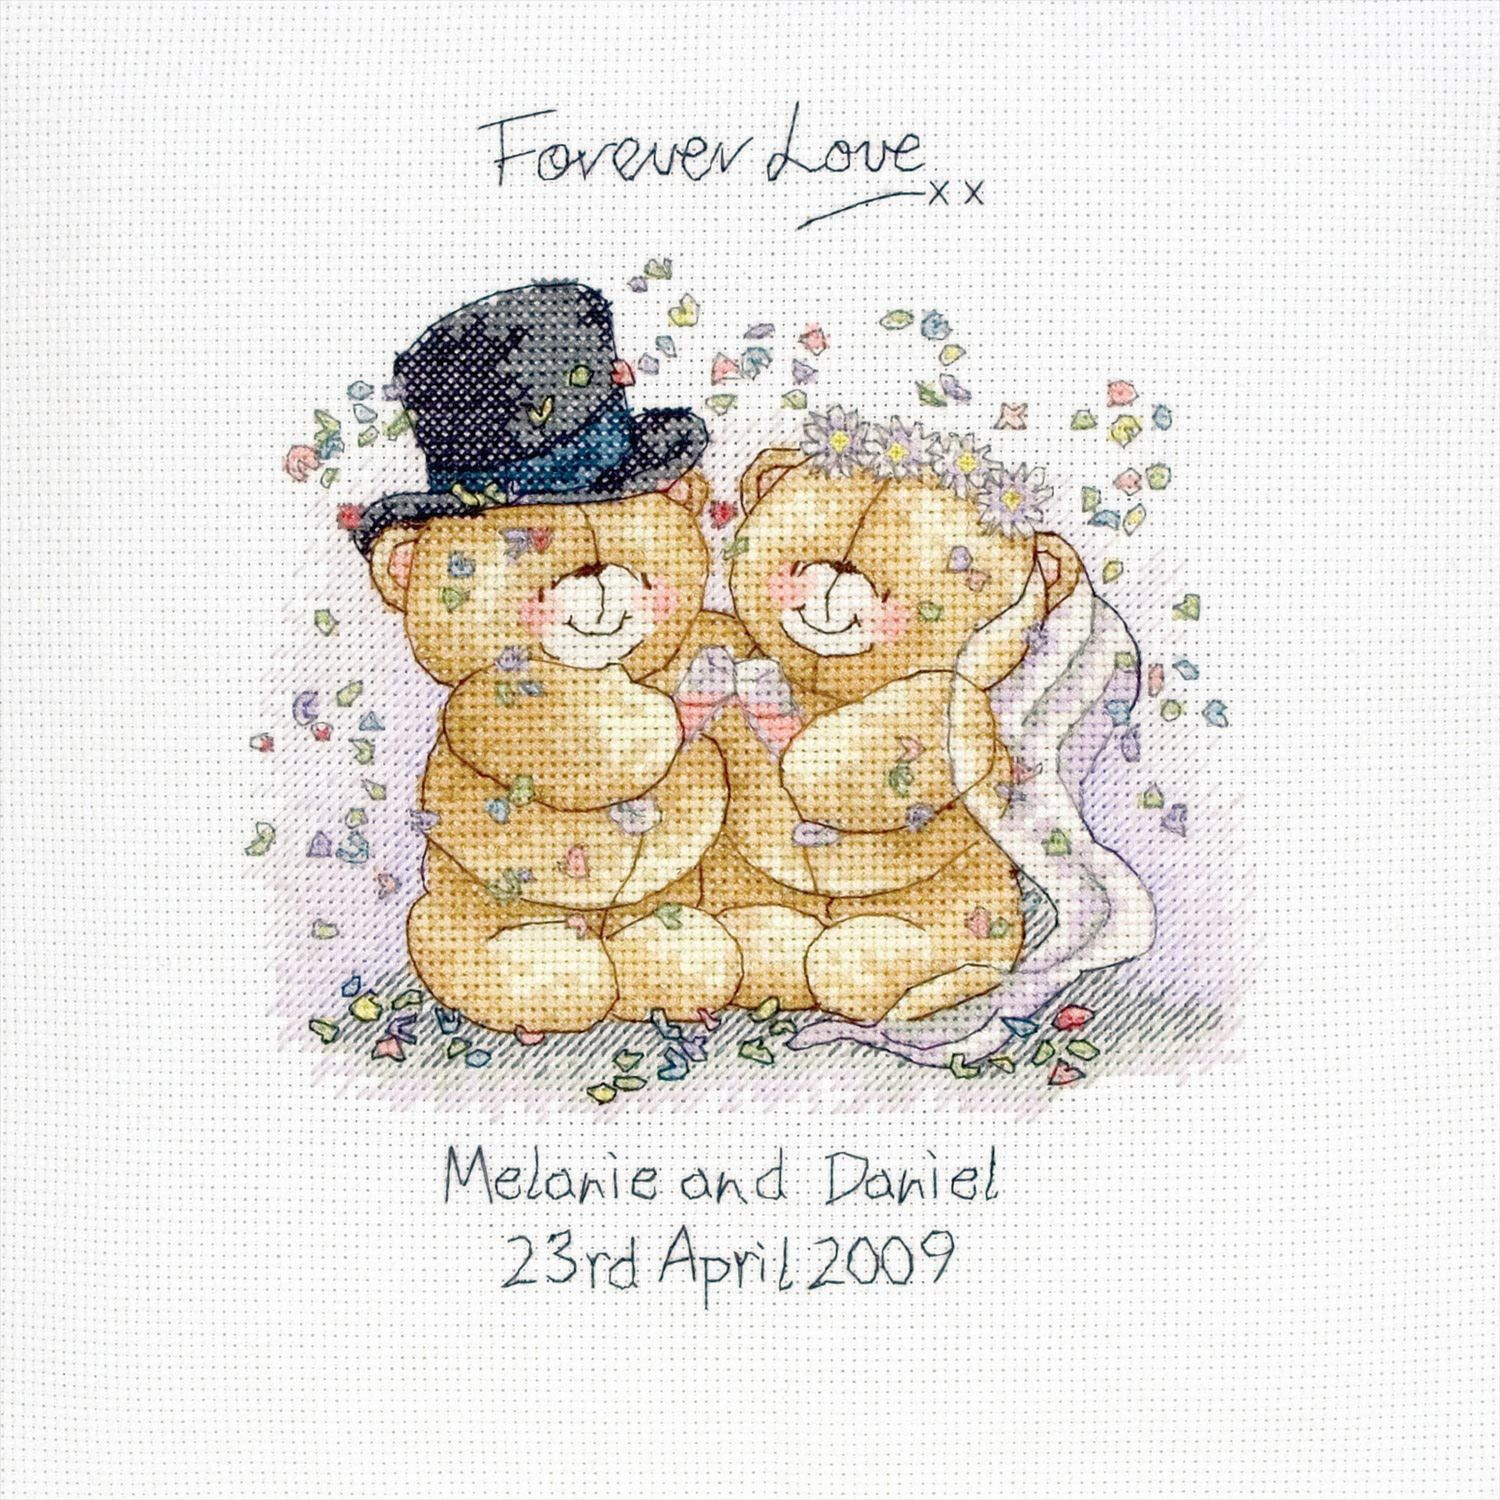 forever friends wedding cross stitch kit